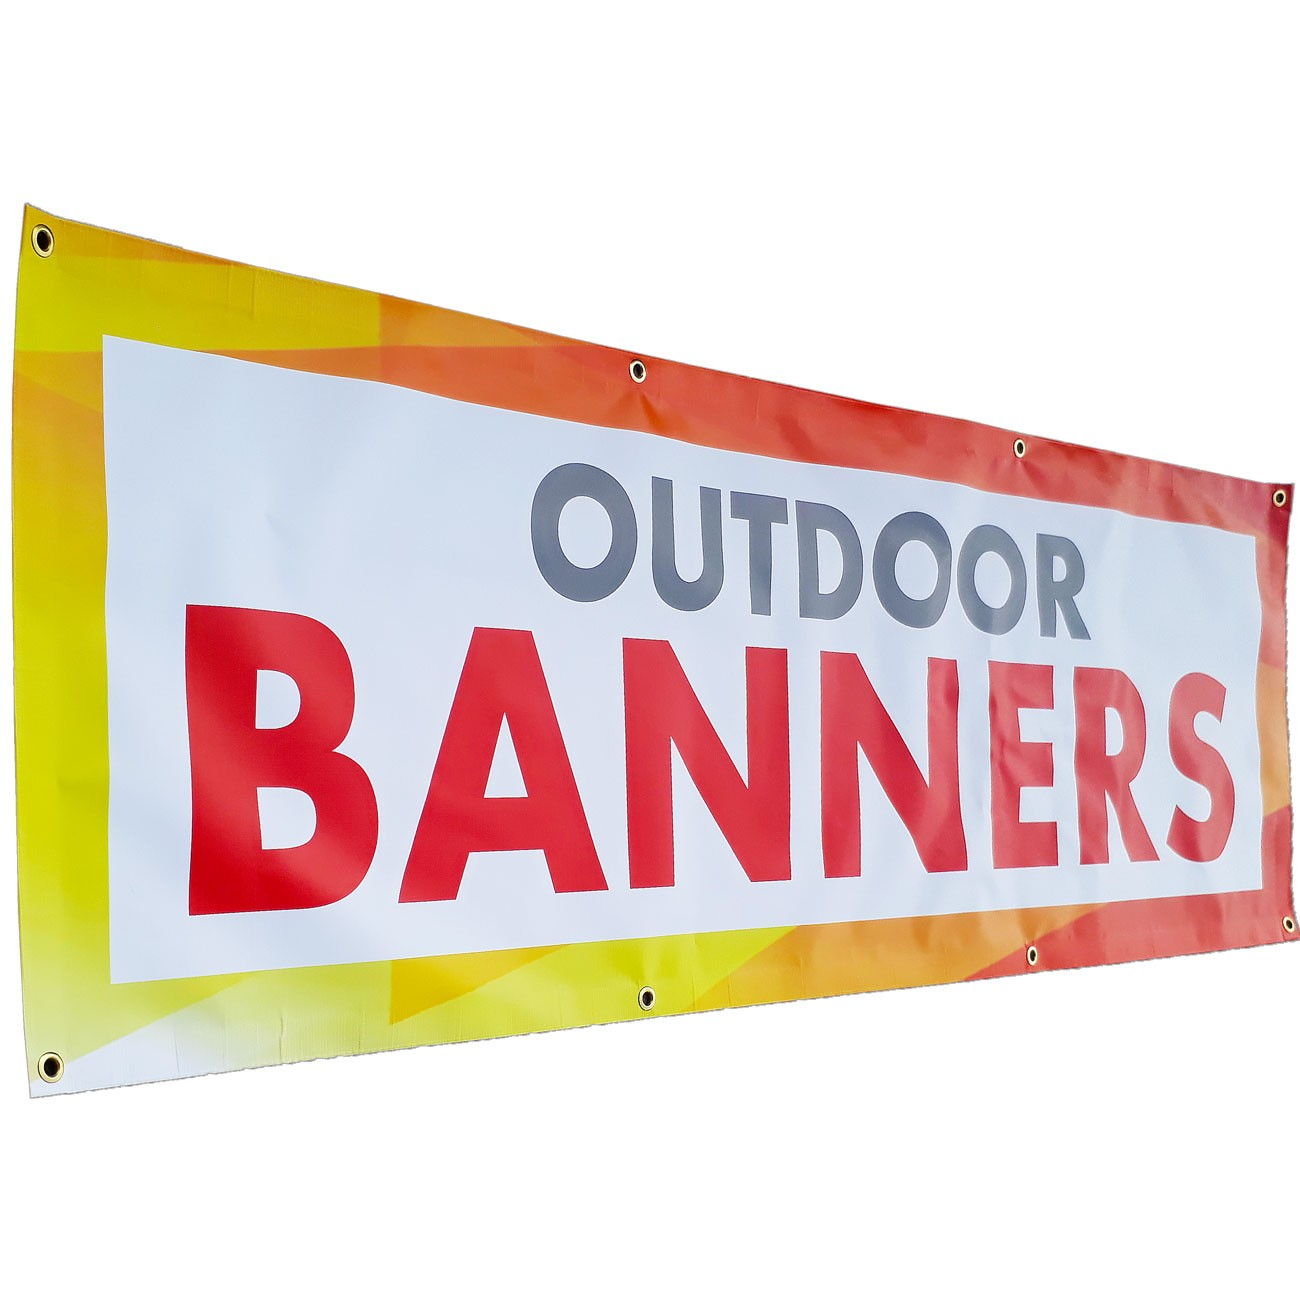 Pvc Banners Outdoor Banners Vinyl Banners Large Pvc Banners